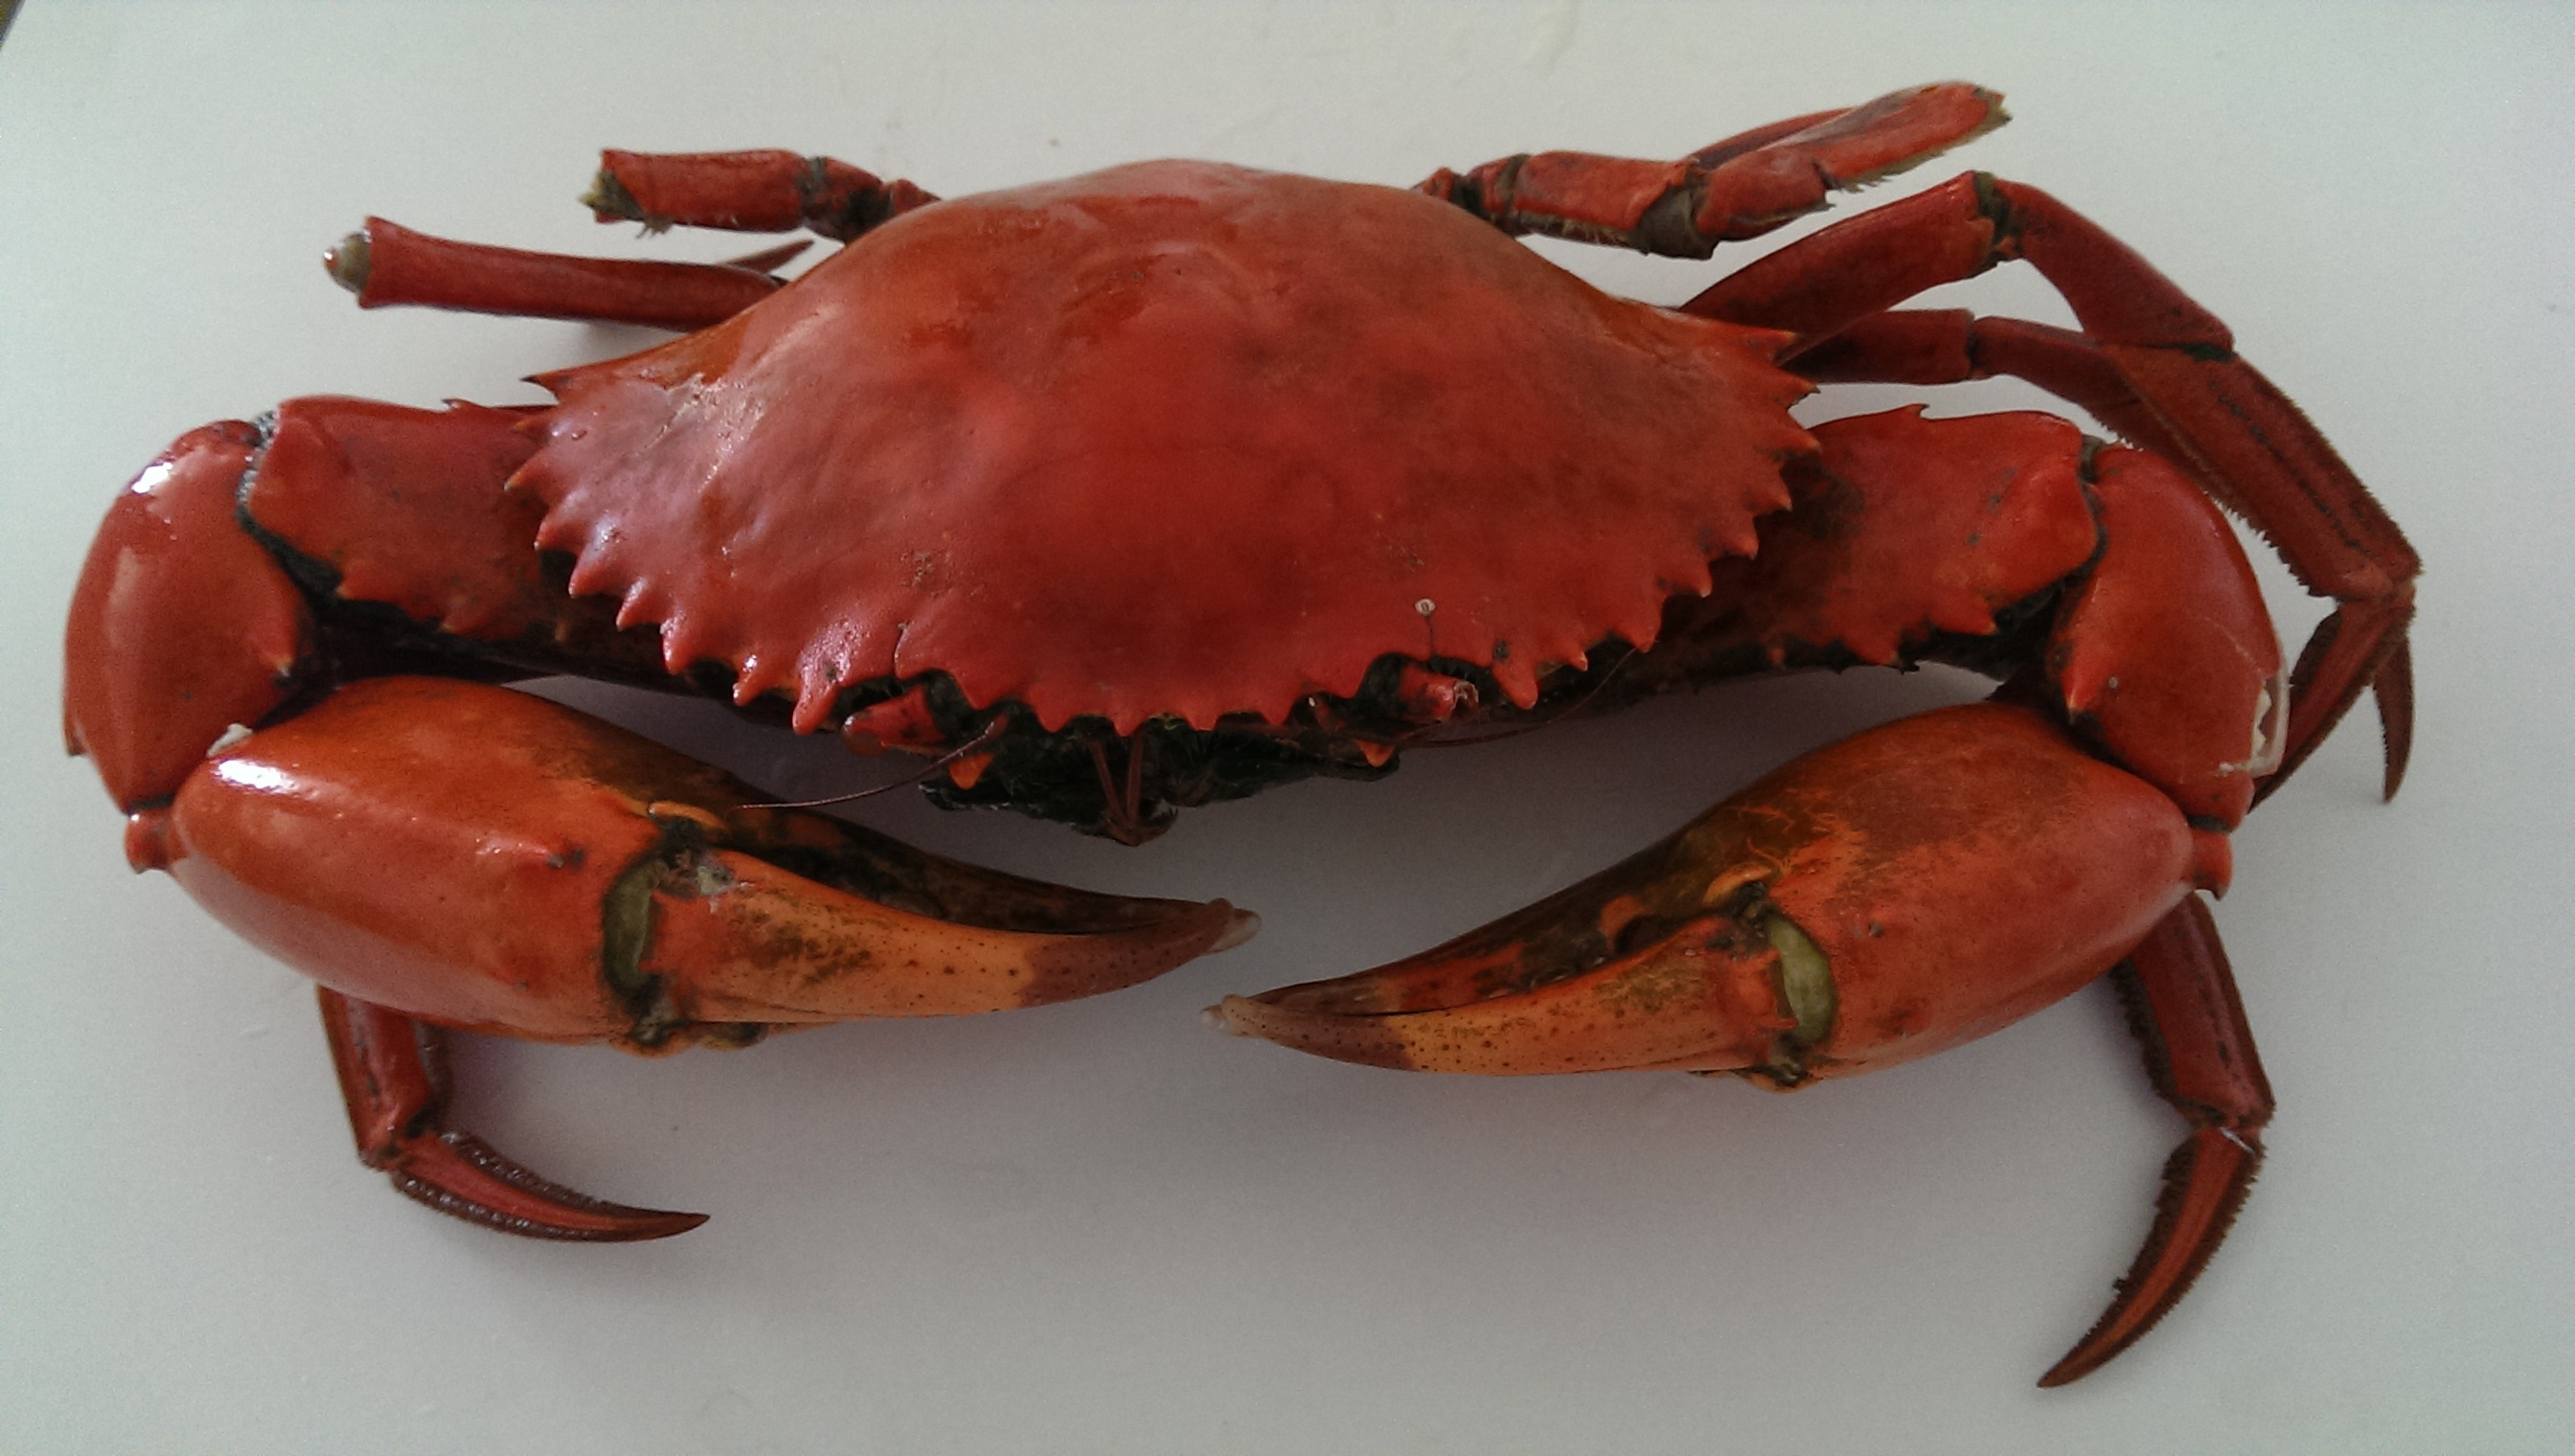 how to cook crab meat without the shell